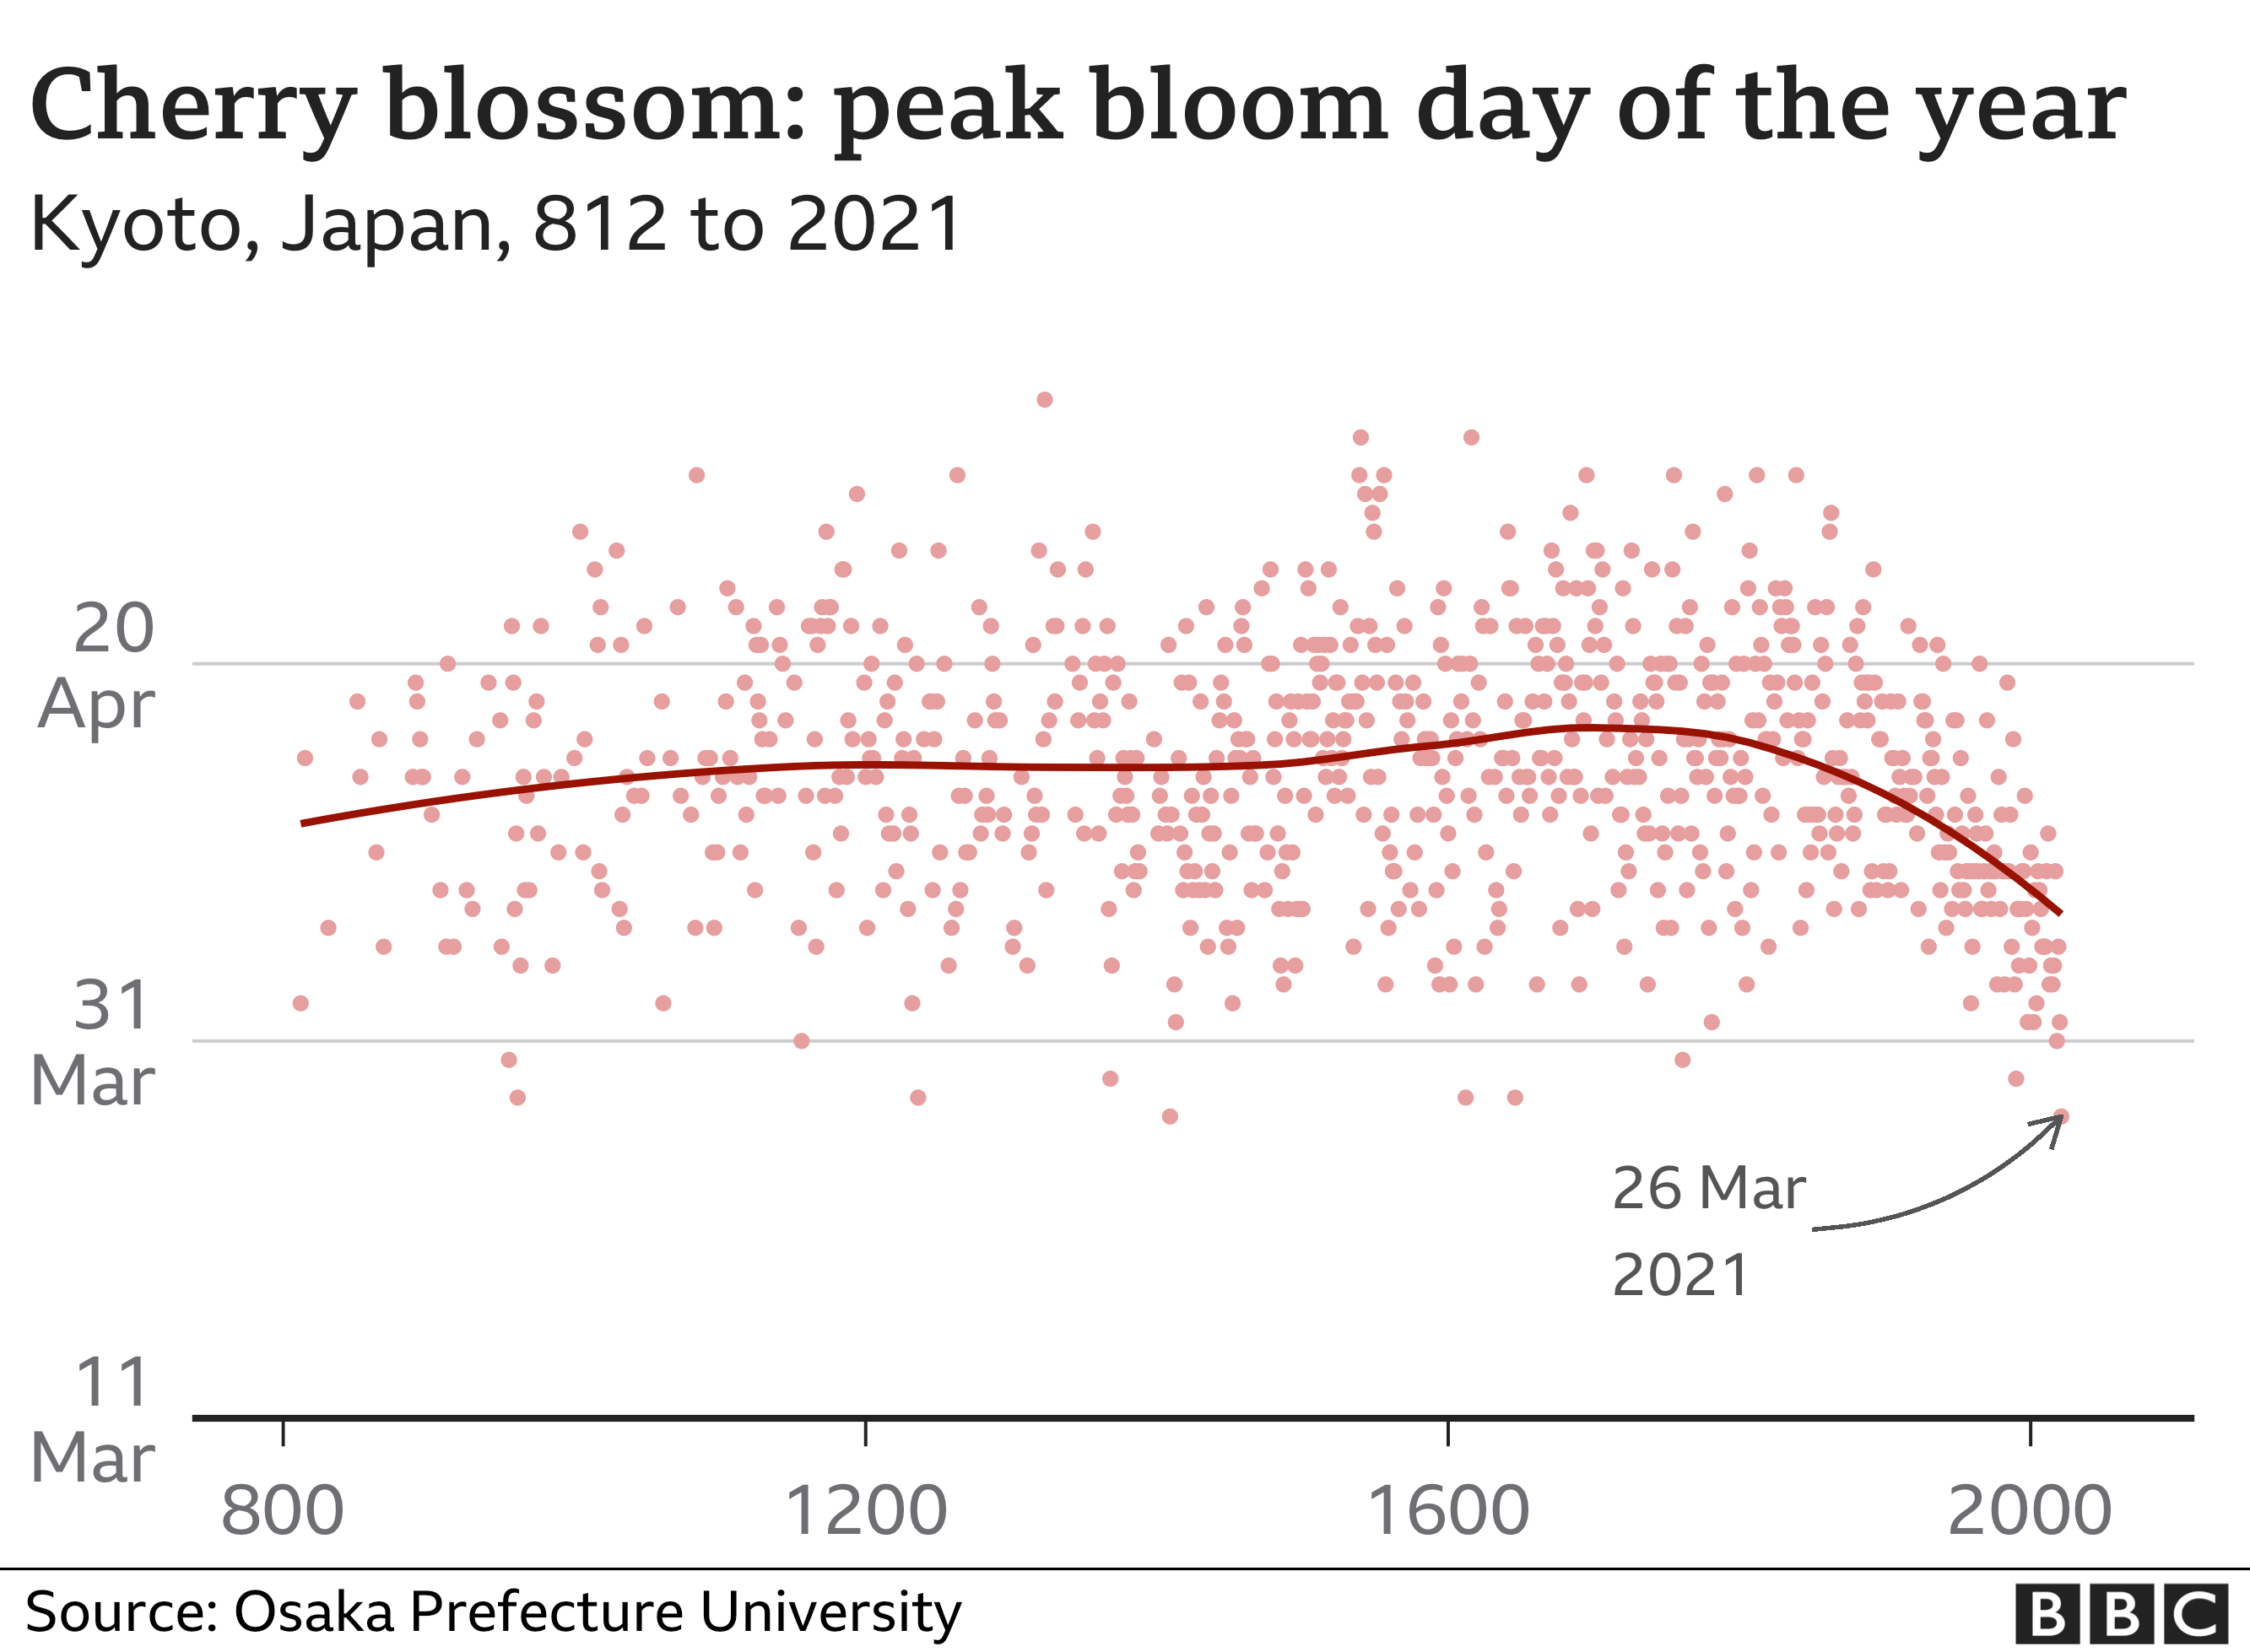 Graphic of peak cherry blossom day in Kyoto from 812 to 2021